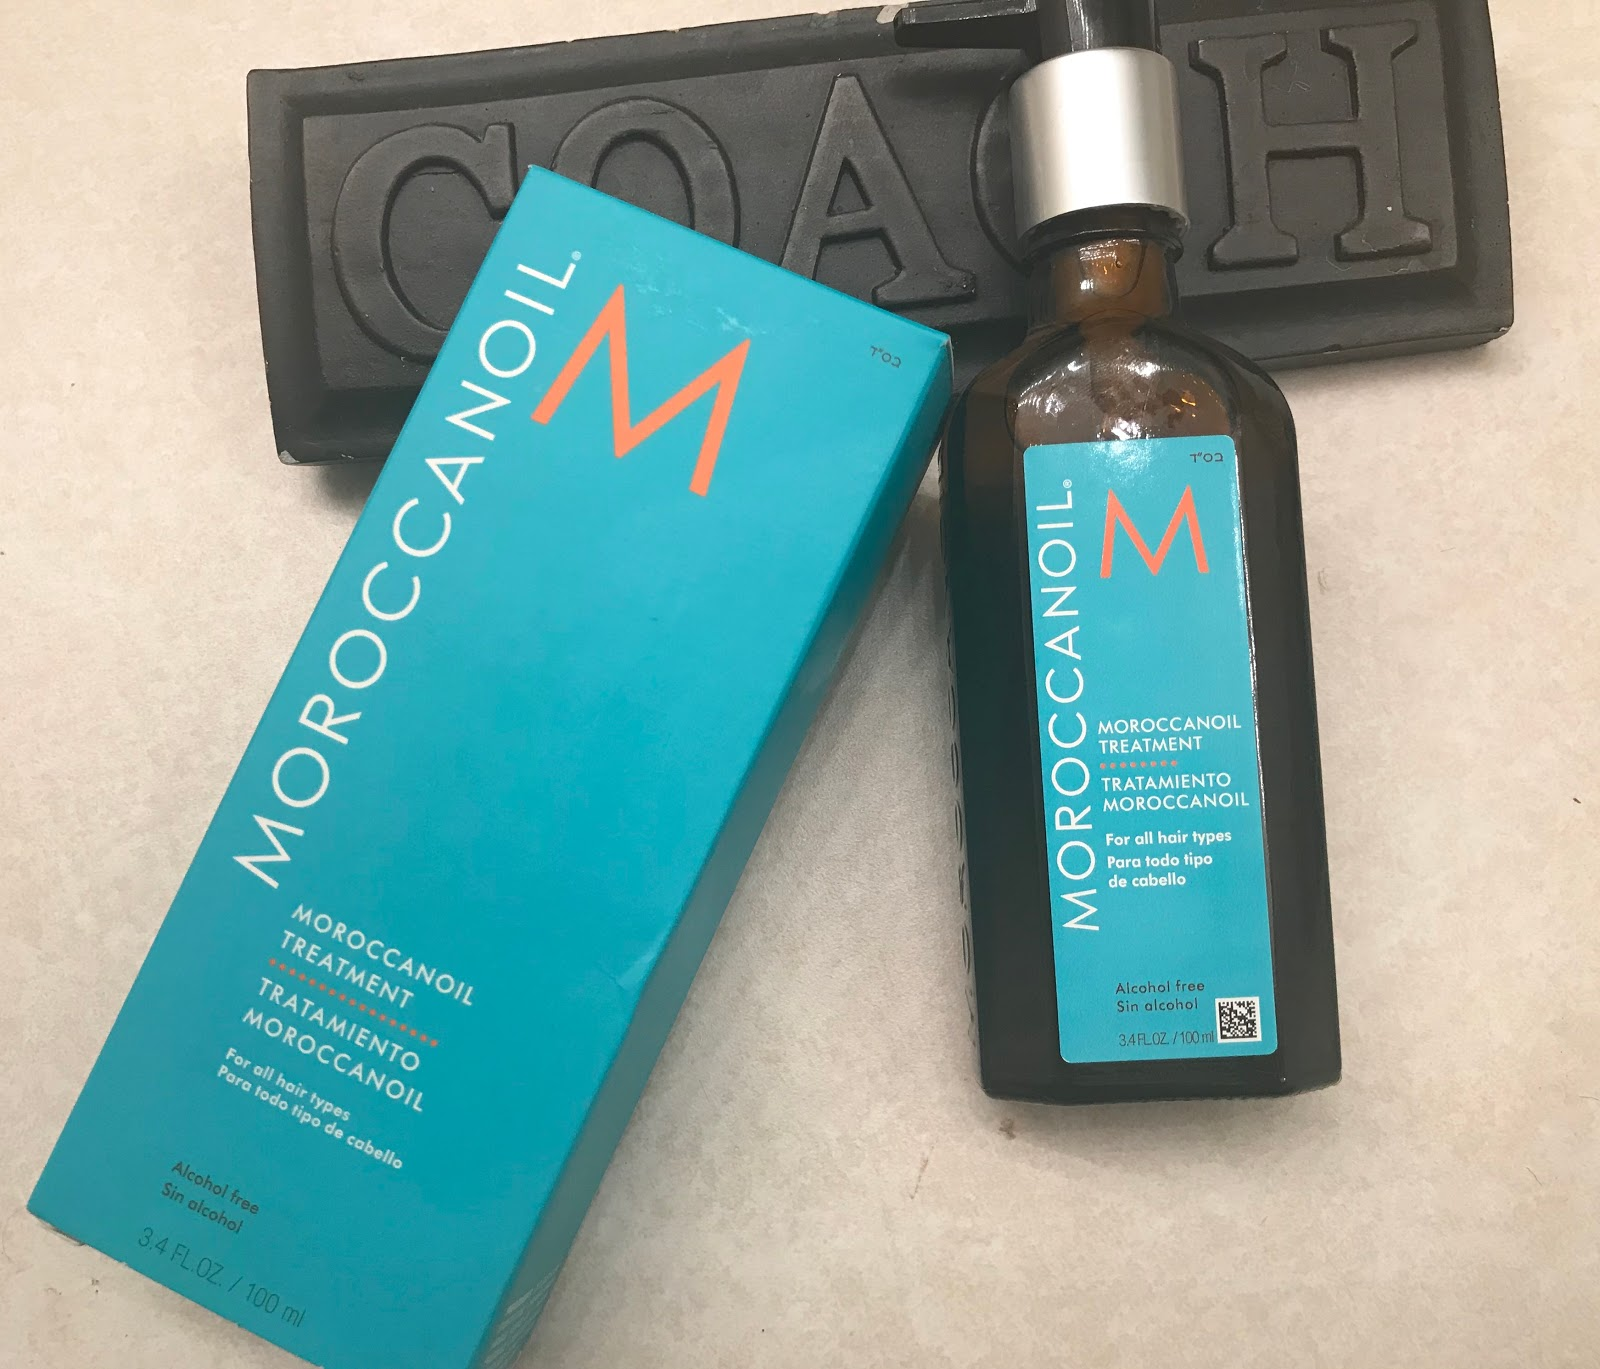 Image: Moroccanoil oil treatment used by woman on blog Bits and Babbles. This is also her favorite product to use